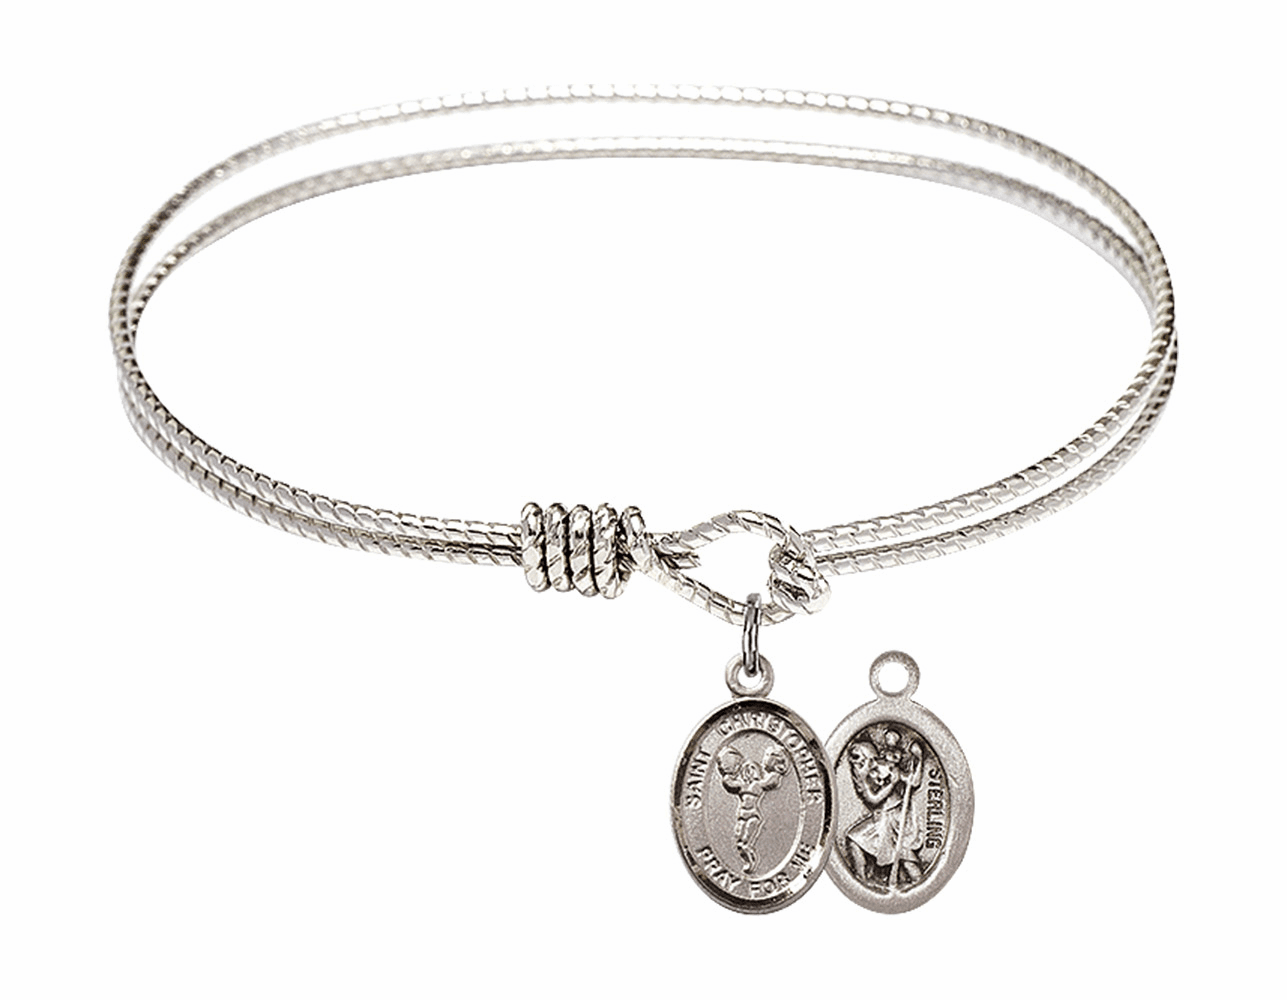 Twist Round Eye Hook St Christopher Cheerleading Bangle Charm Bracelet by Bliss